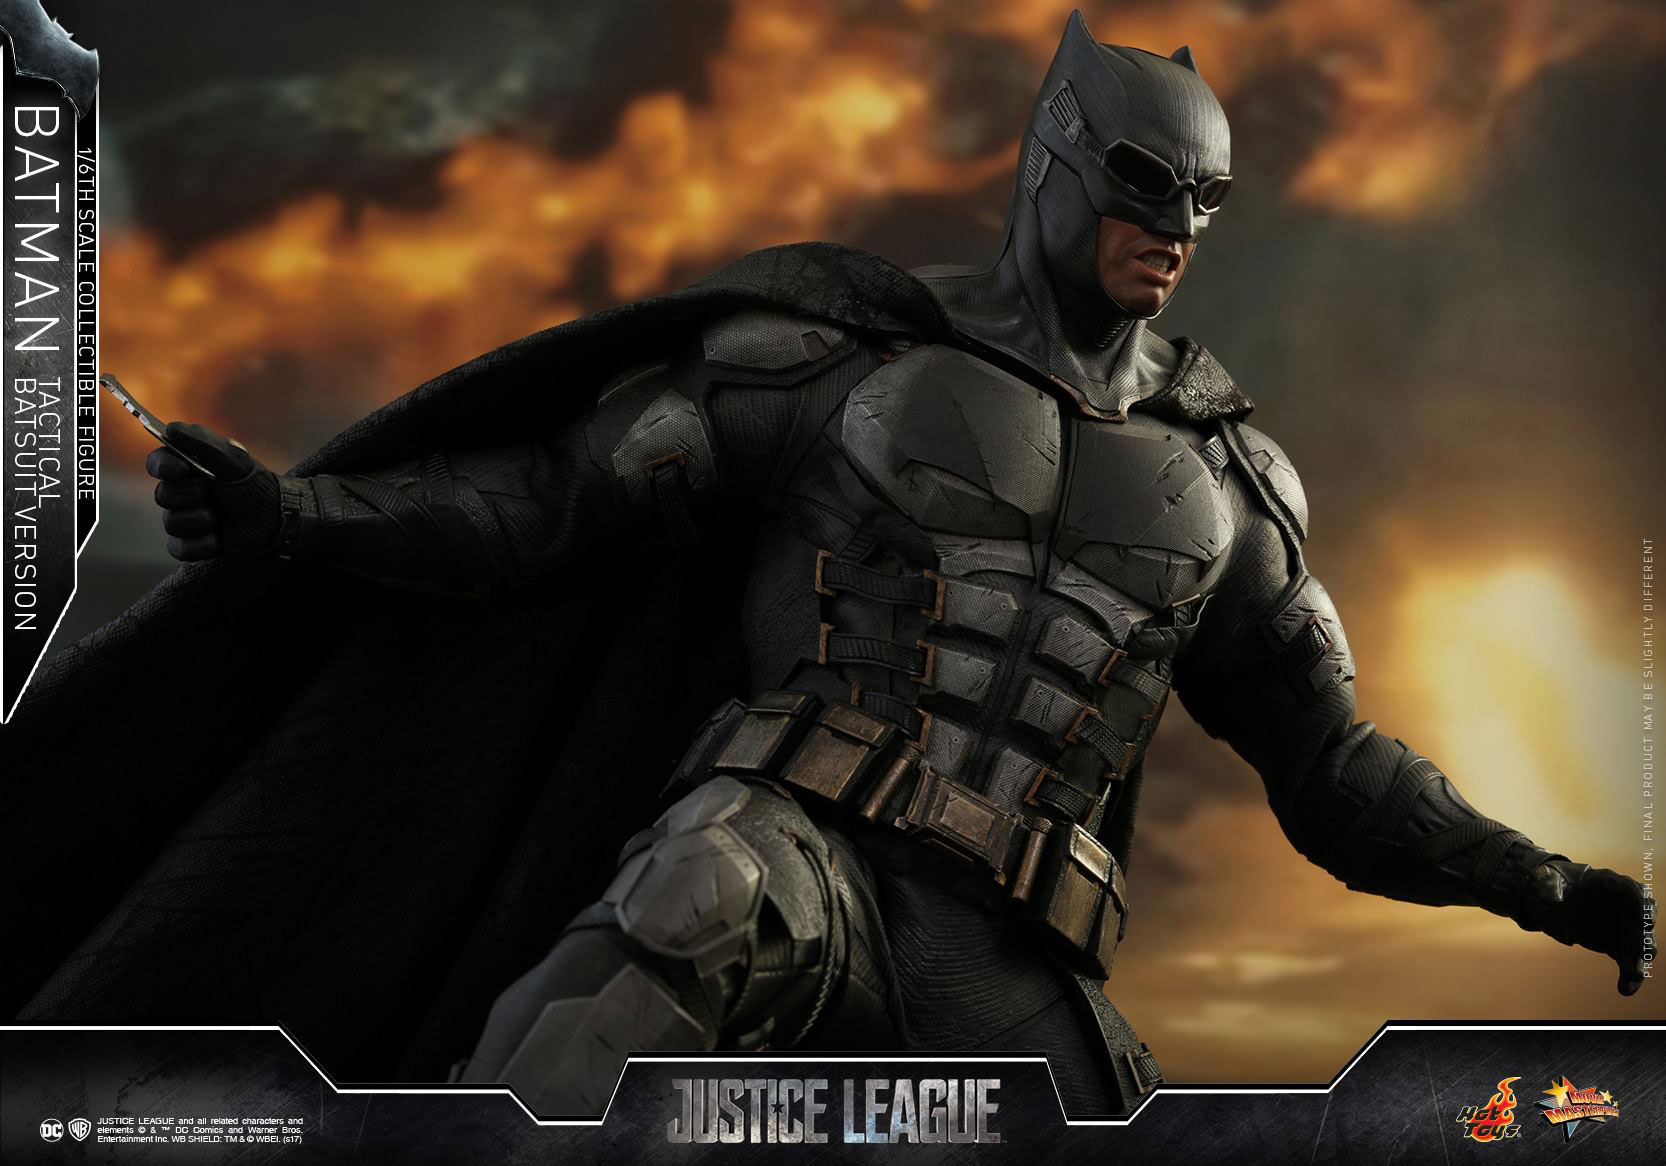 justice-league-batman-tactical-suit-hot-toys-figure-2